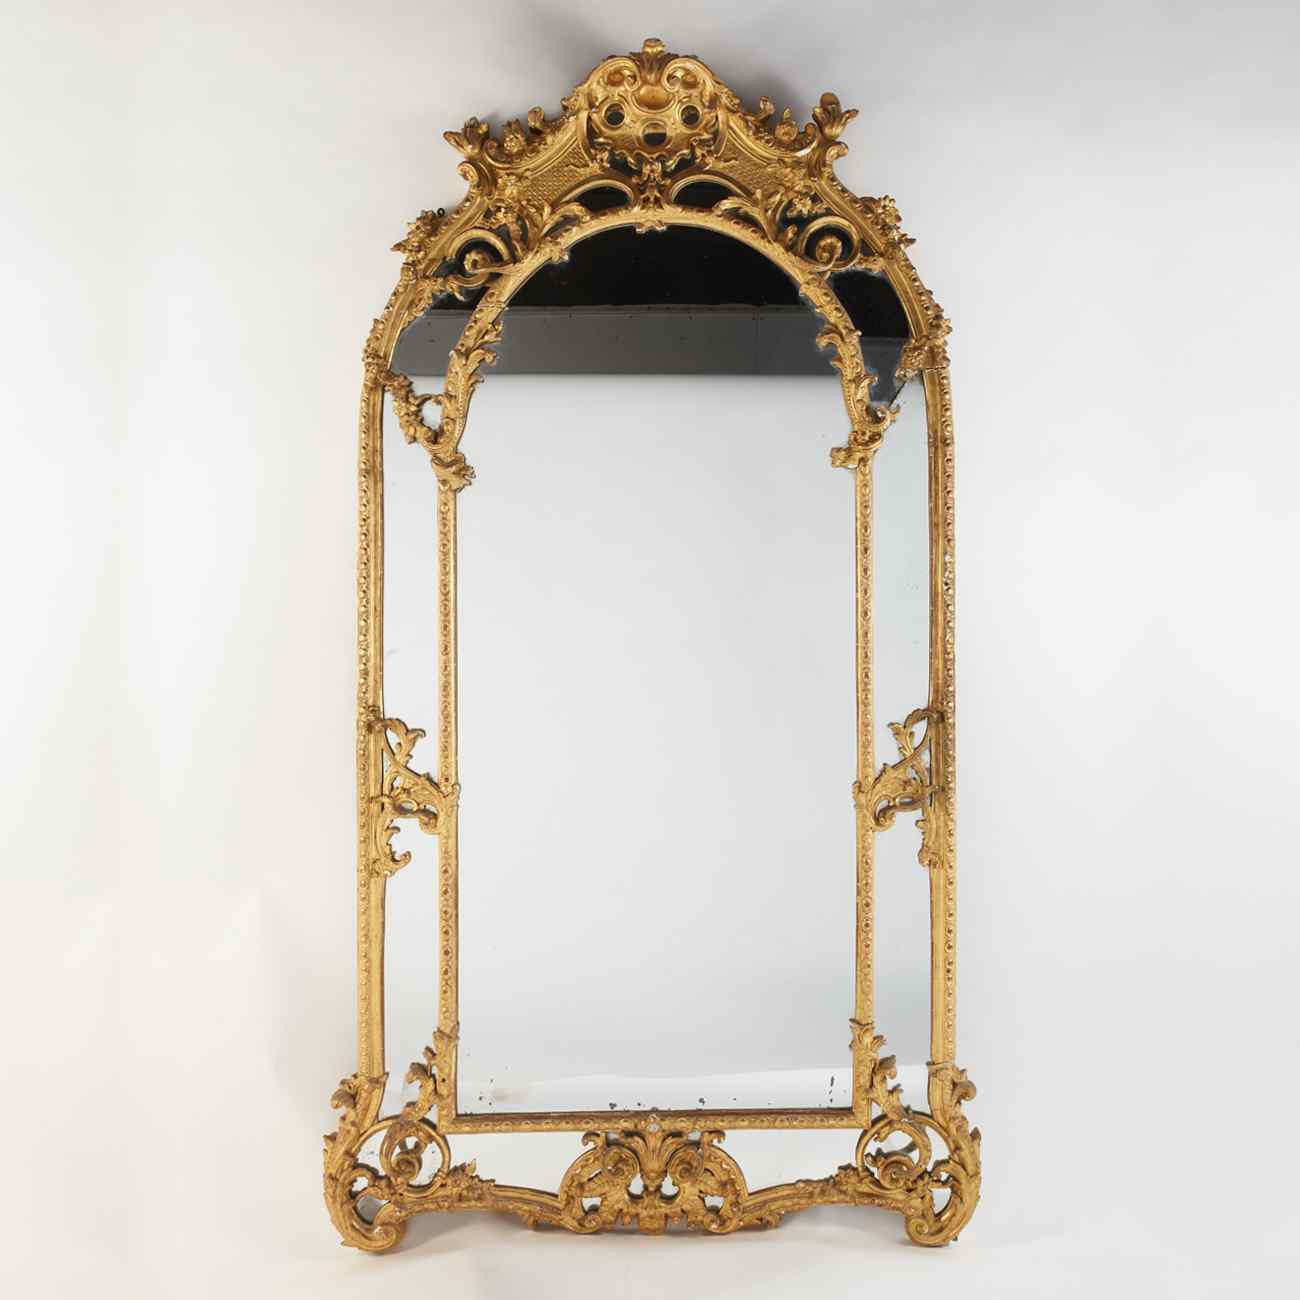 Regency period giltwood mirror, 18th century